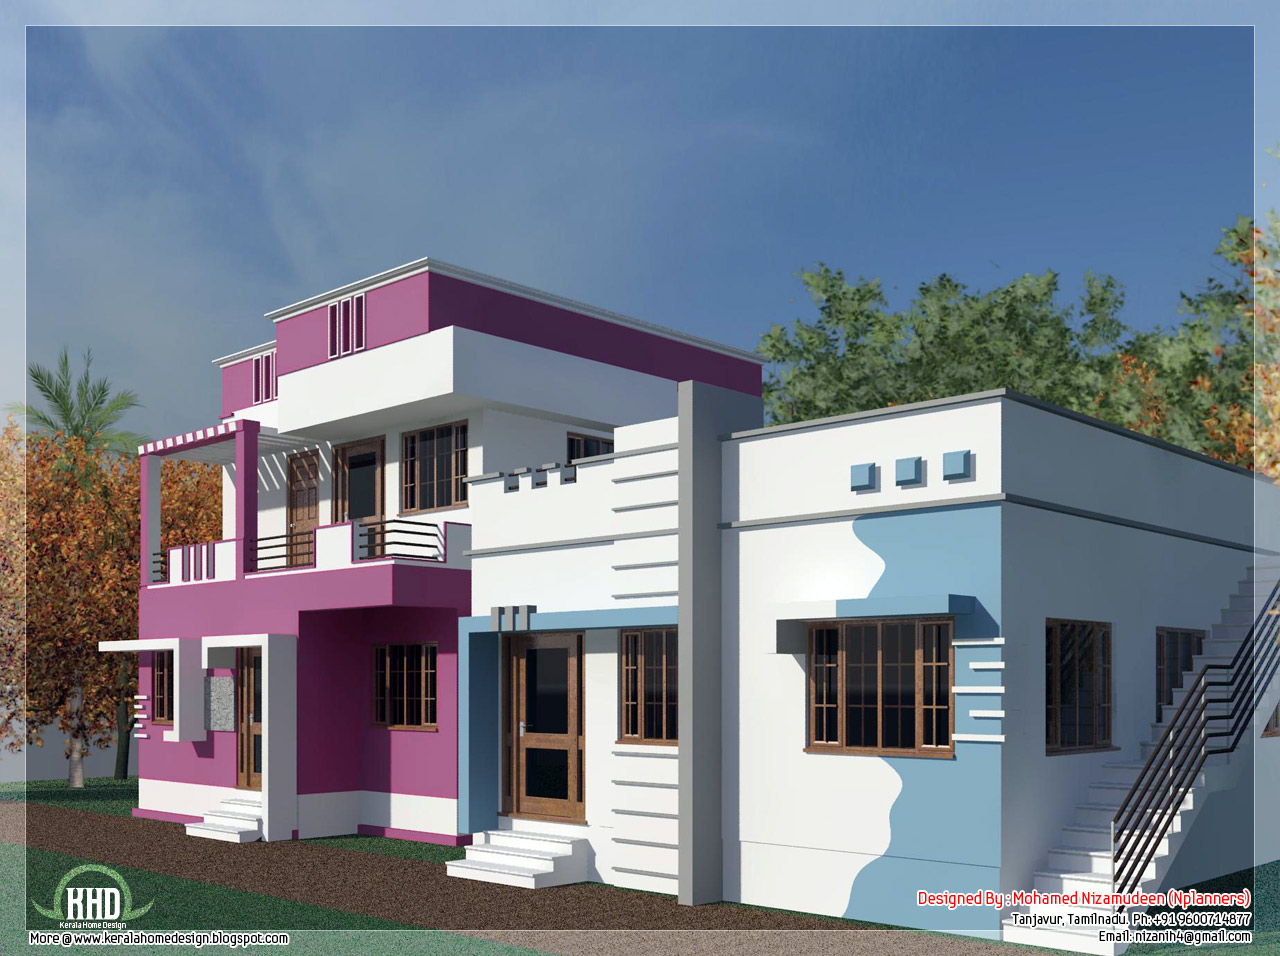 Tamilnadu model home design in 3000 kerala home for Tamilnadu house models